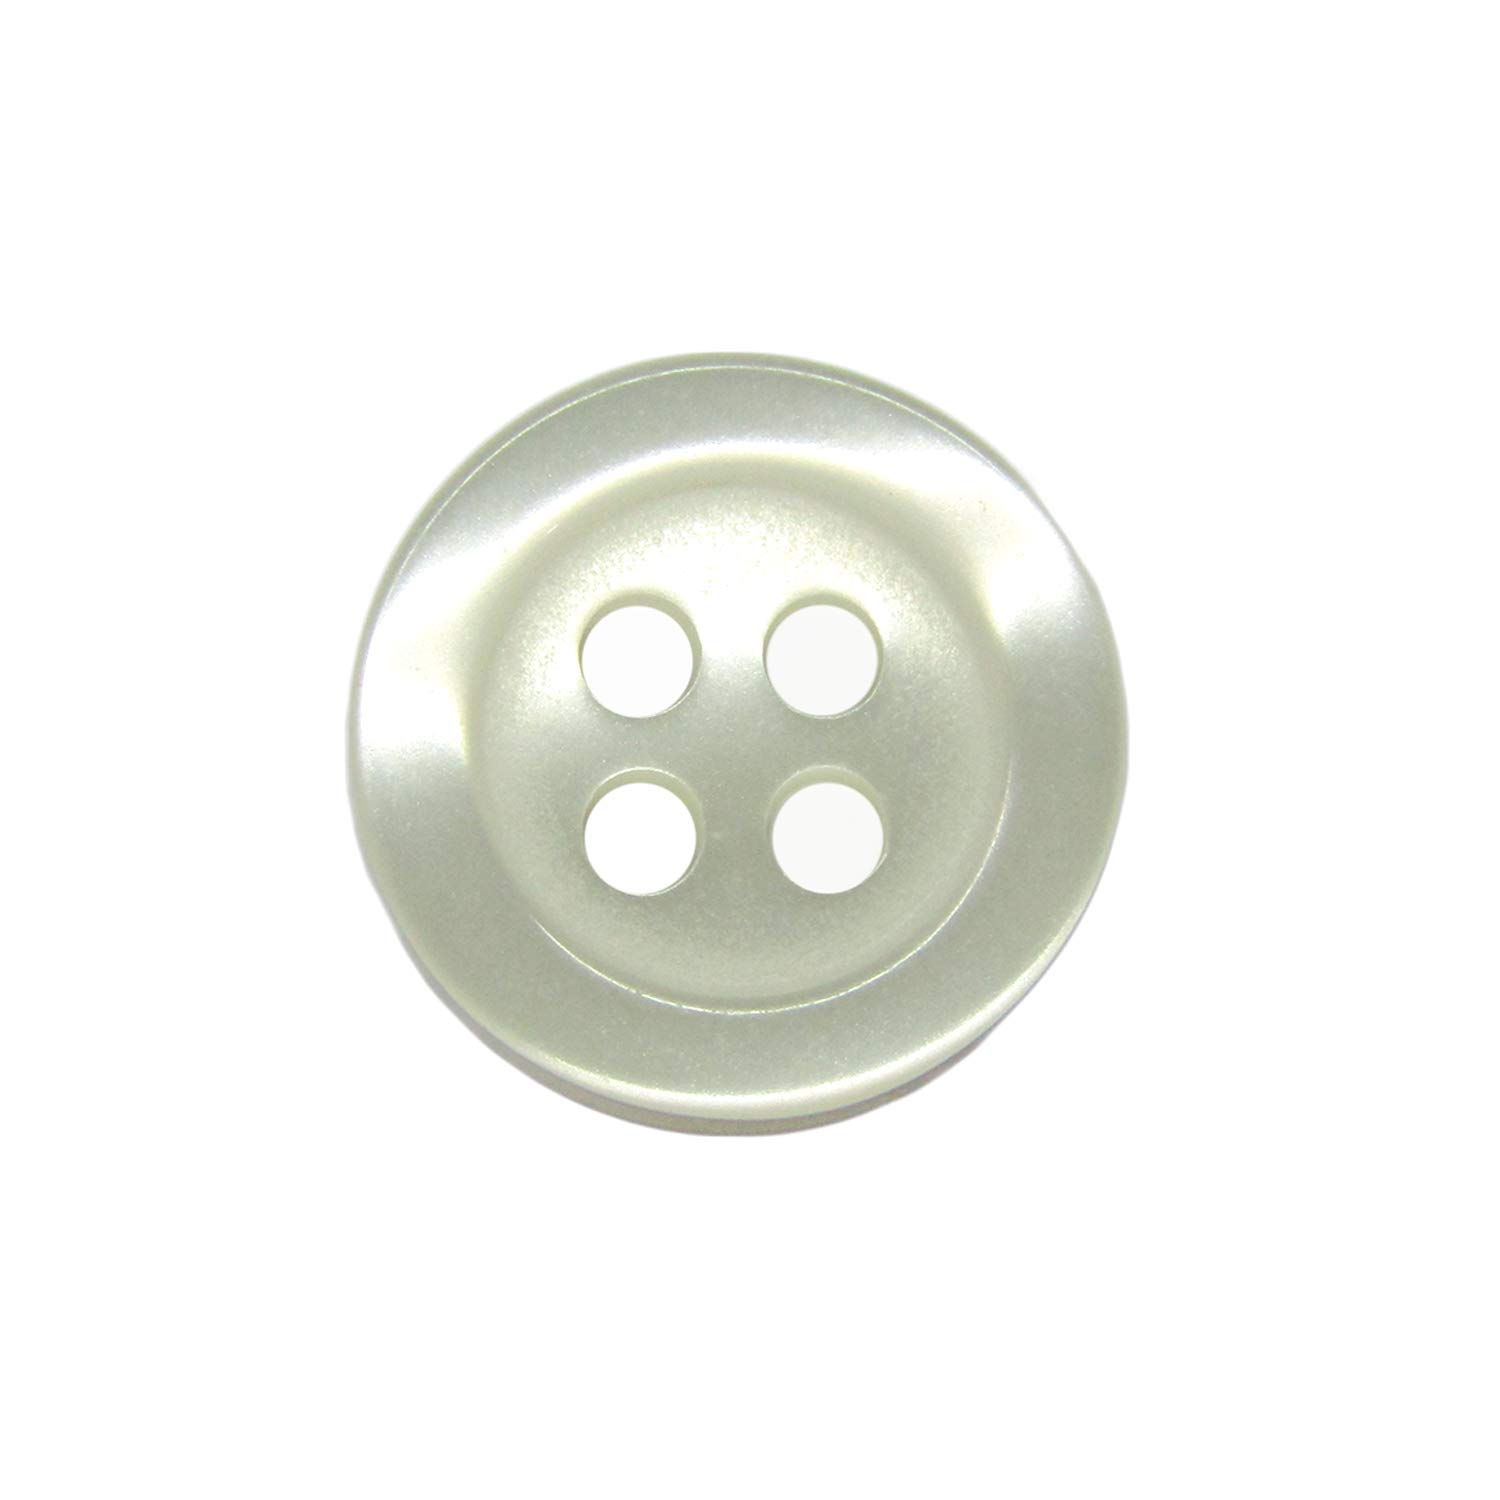 3//8 in 5//16 in and 8 Shirt Collar Buttons x 9mm Off White 8 Shirt Sleeves x 10mm 24-Buttons 7//16 in ButtonMode Thick Extra Durable Shirt Buttons 24pc Set has 8 Shirt Front Buttons x 11mm